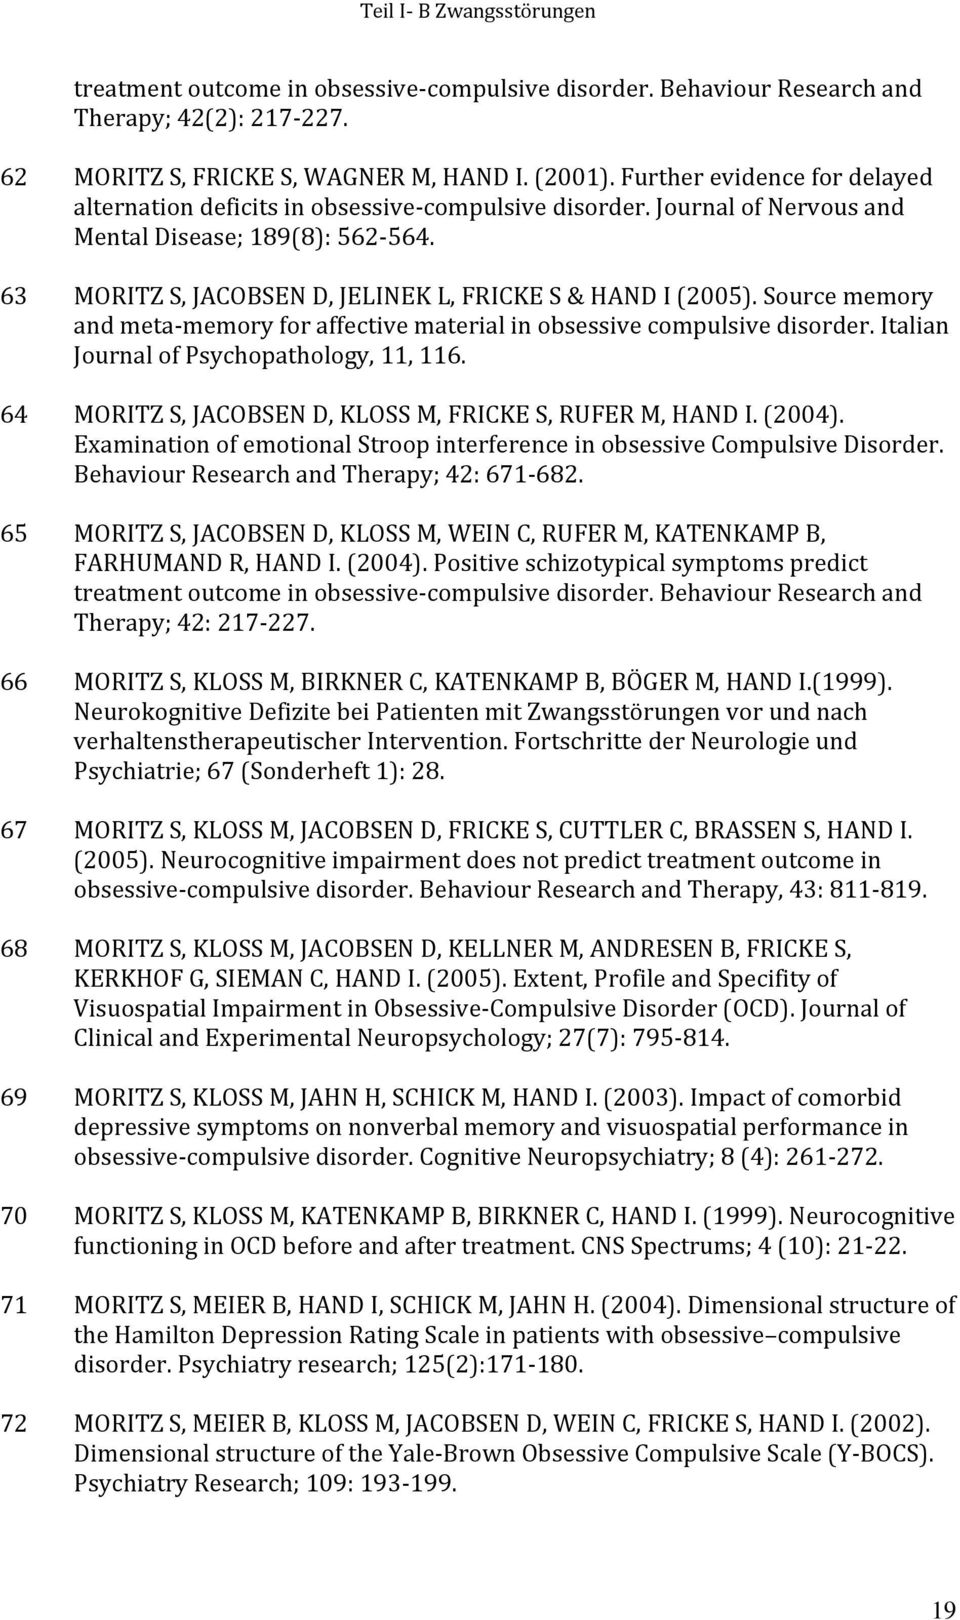 63 MORITZ S, JACOBSEN D, JELINEK L, FRICKE S & HAND I (2005). Source memory and meta memory for affective material in obsessive compulsive disorder. Italian Journal of Psychopathology, 11, 116.